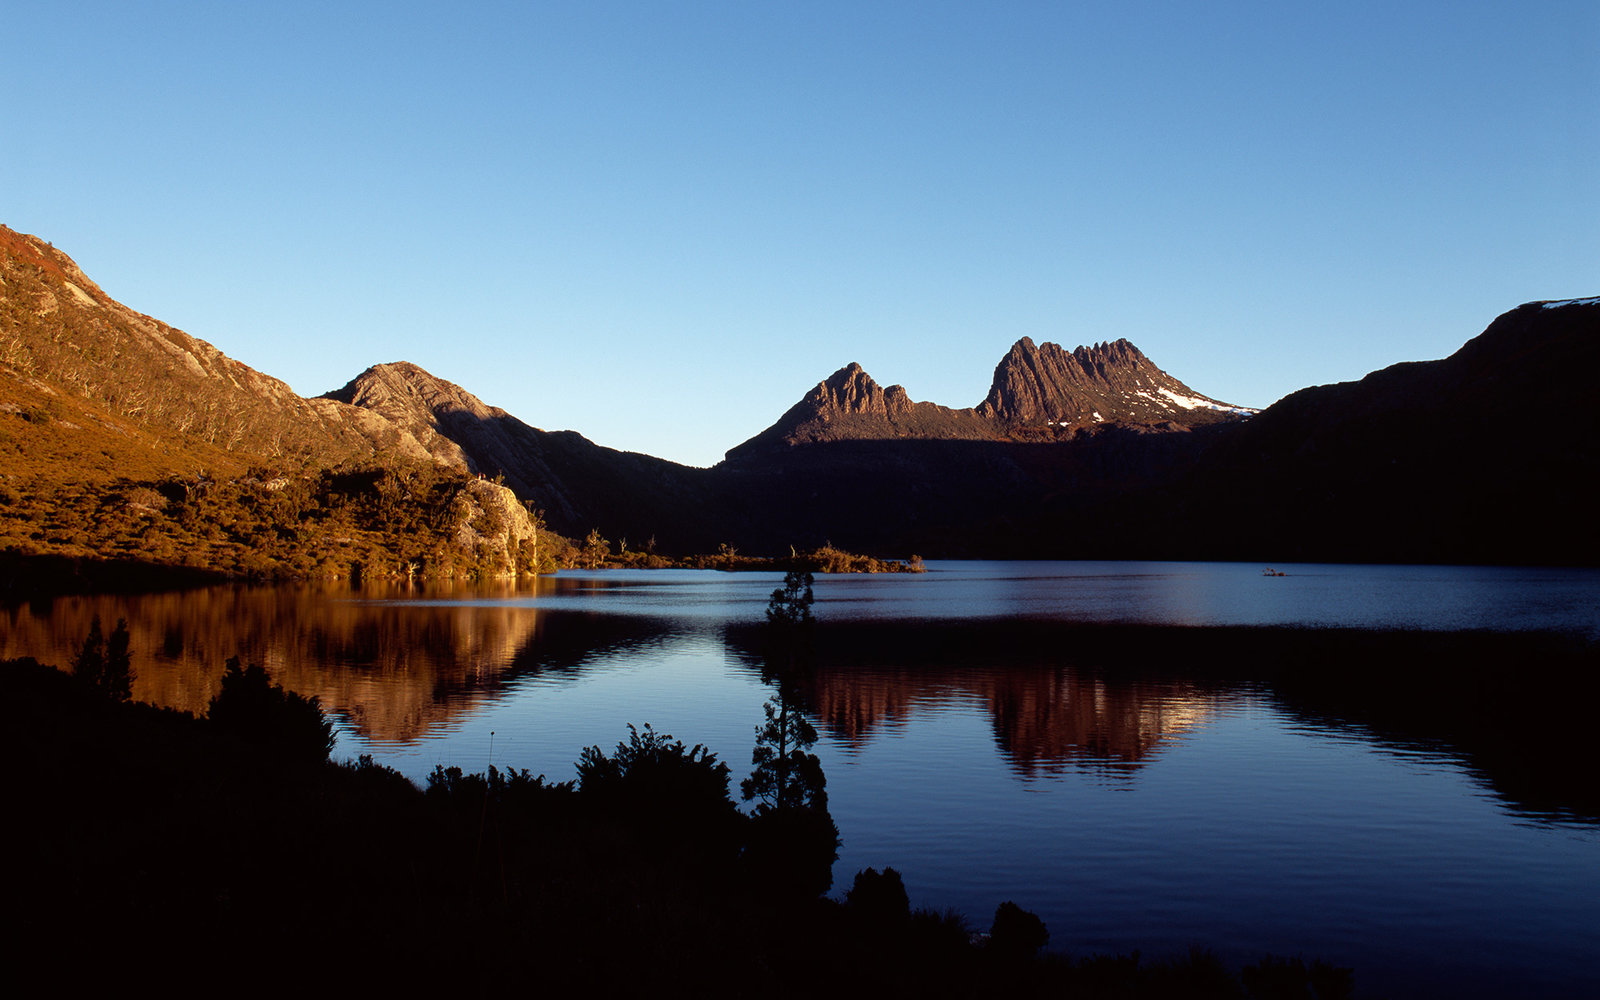 Ancient glacial crags reflected in the still waters of Dove Lake.